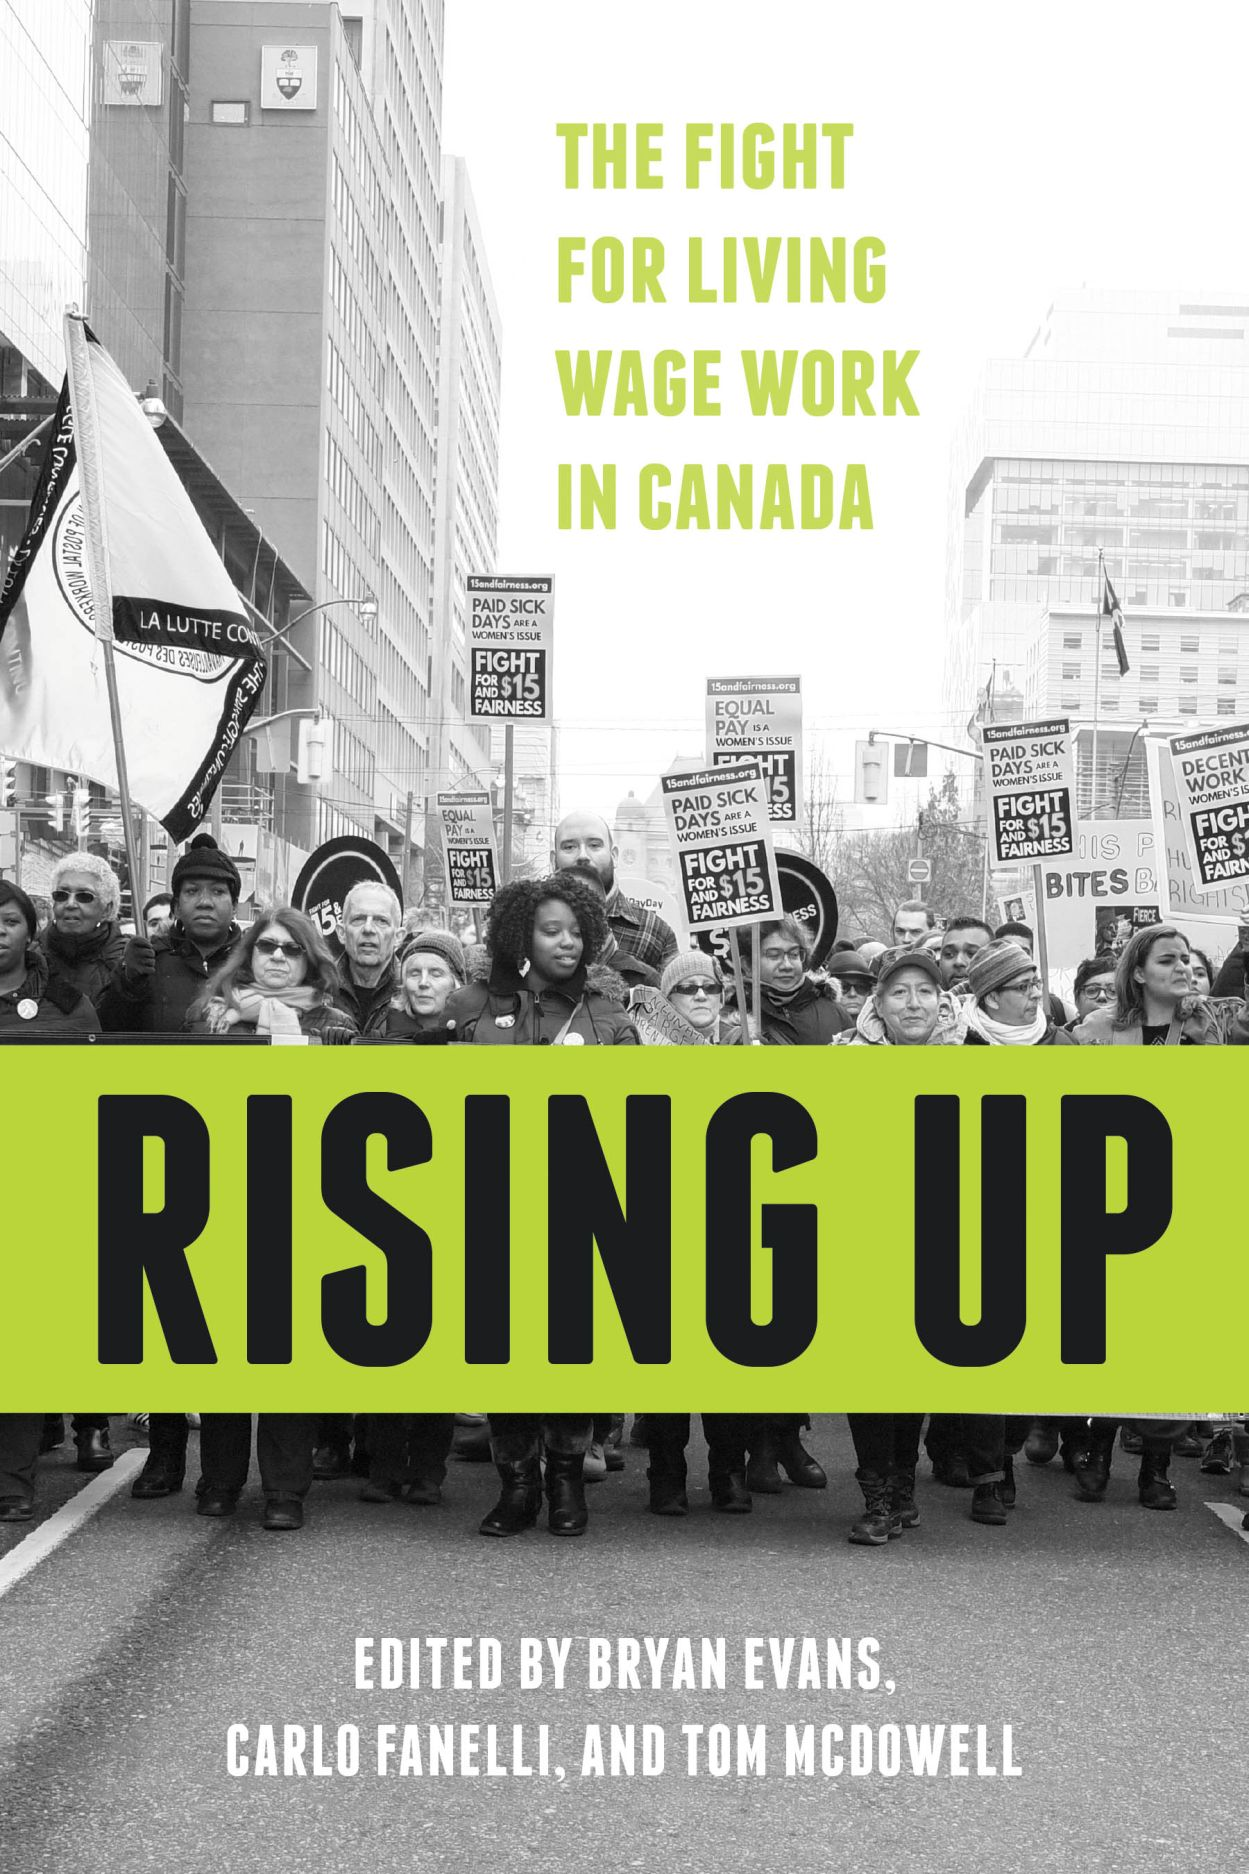 Rising Up: The Fight for Living Wage Work in Canada